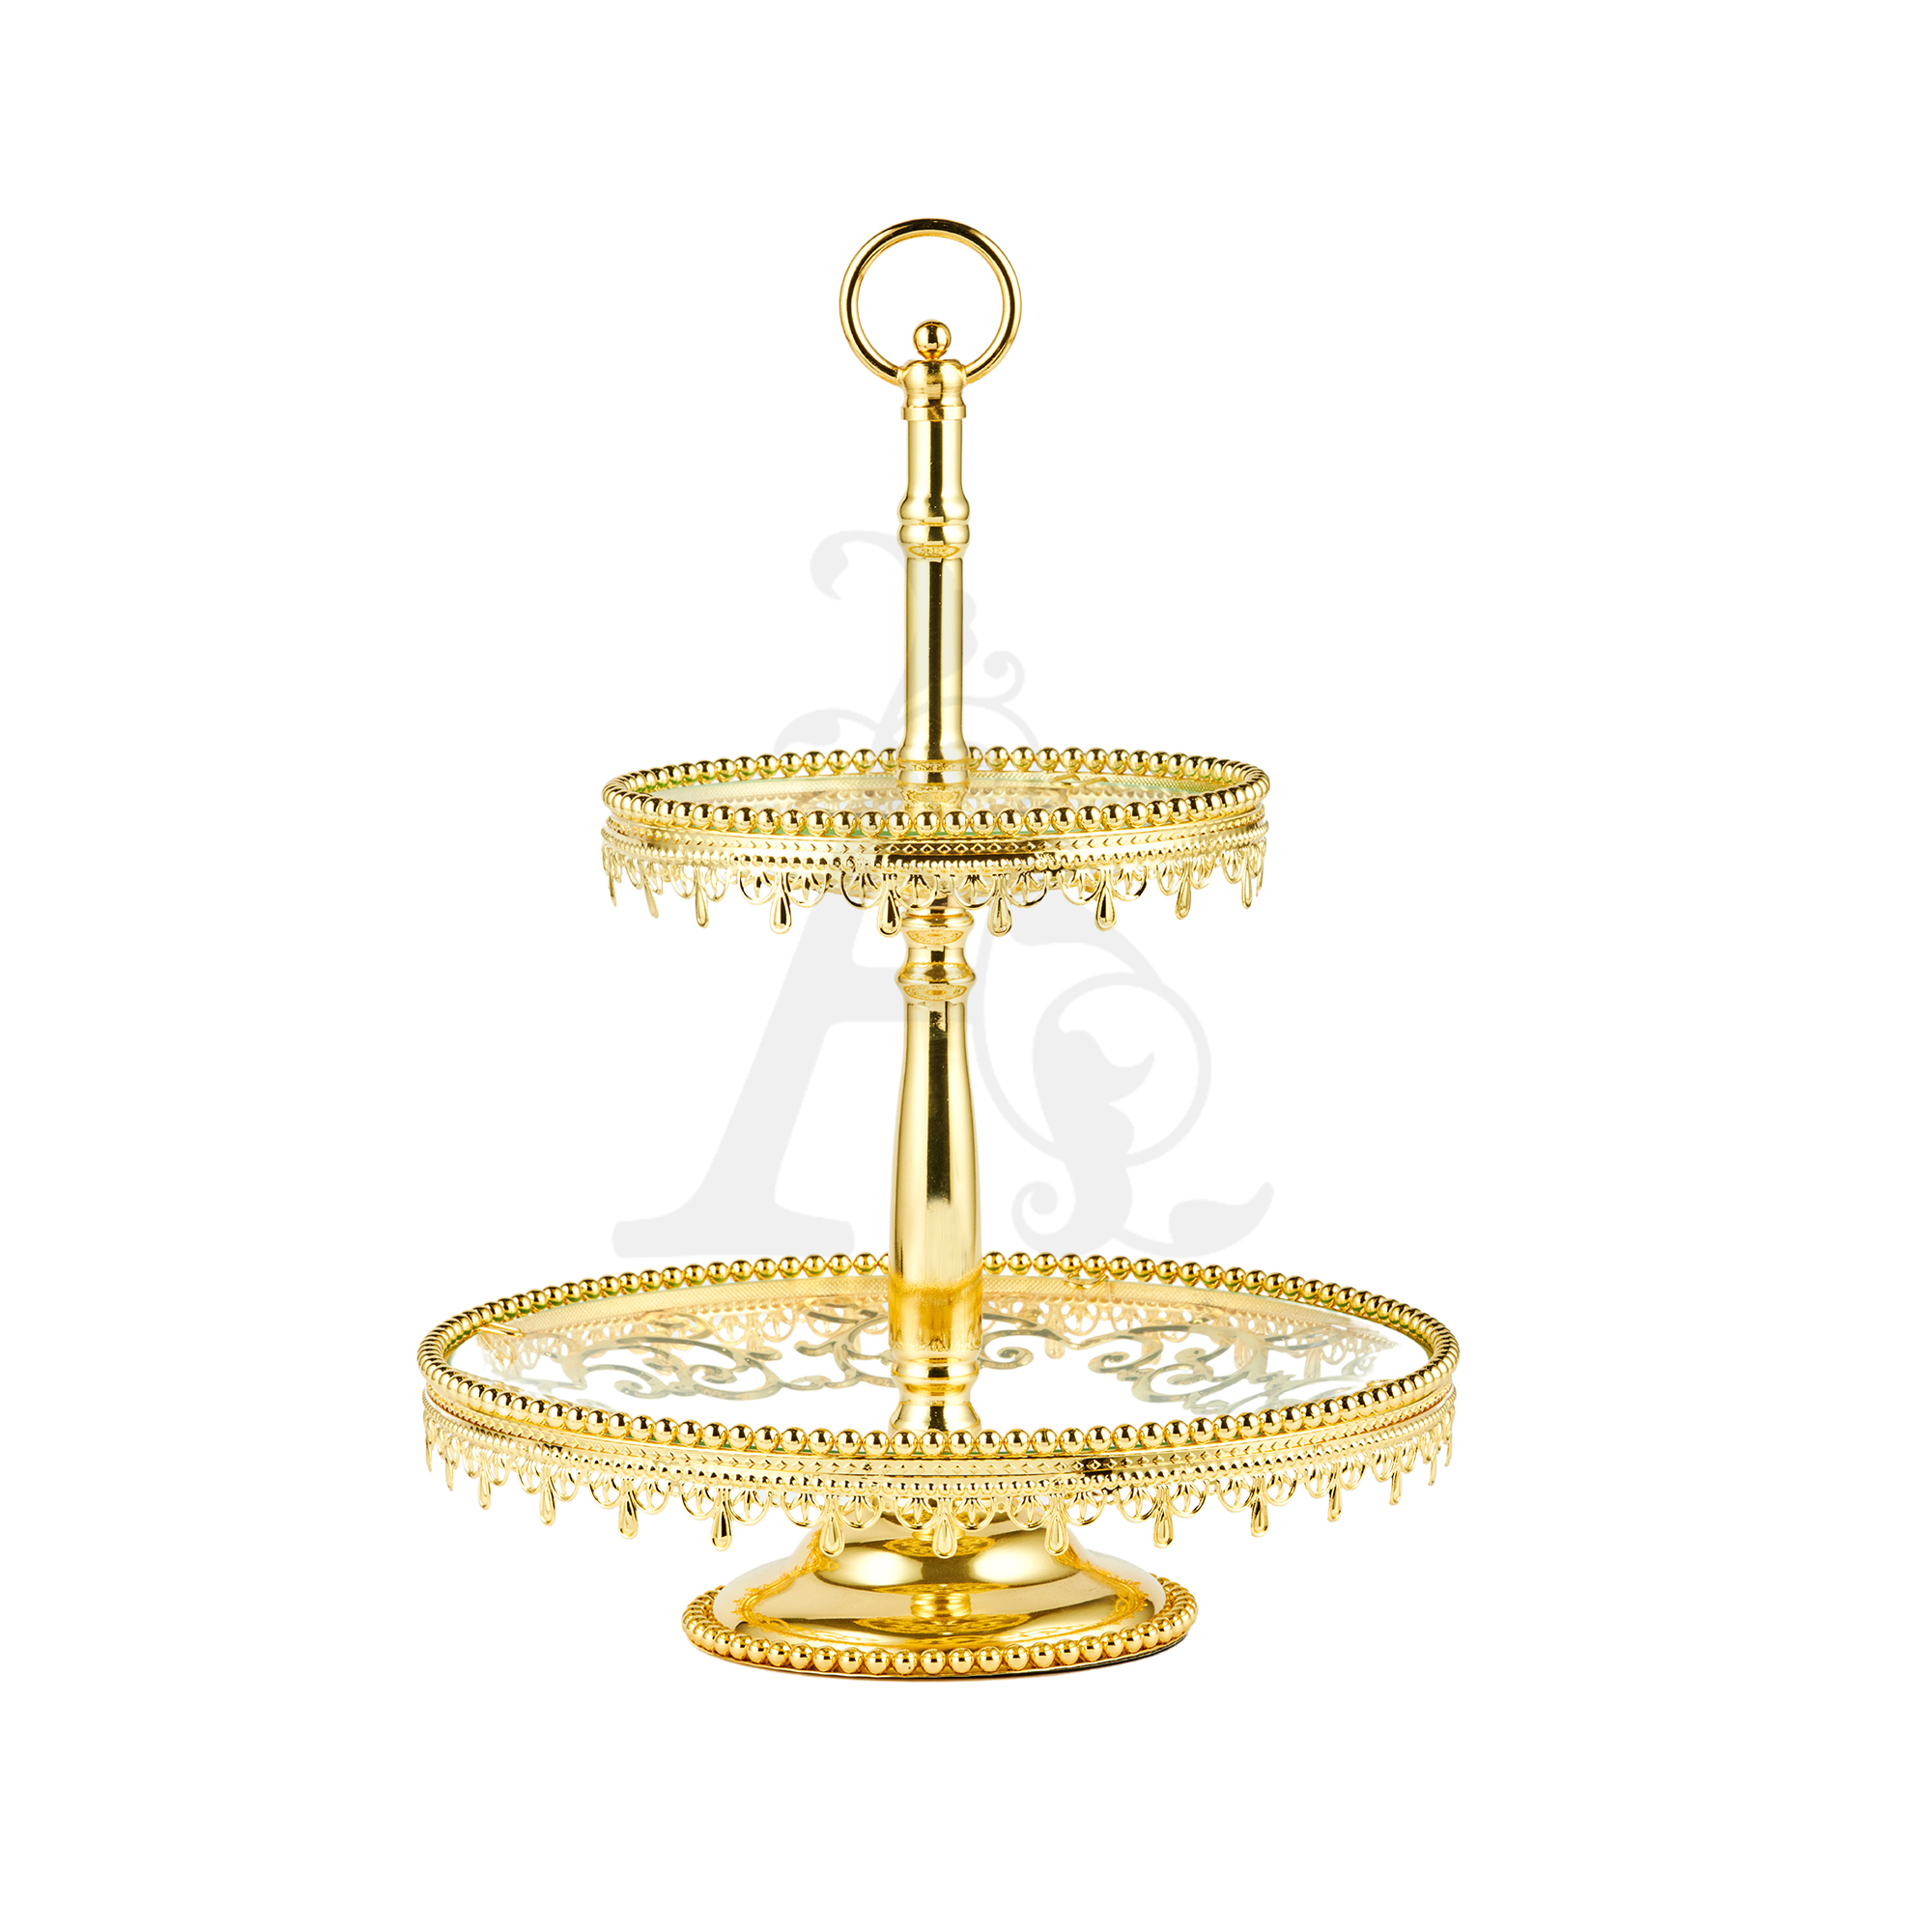 Buy 2 Tiers Delight Serving Stands - Gold Model 2